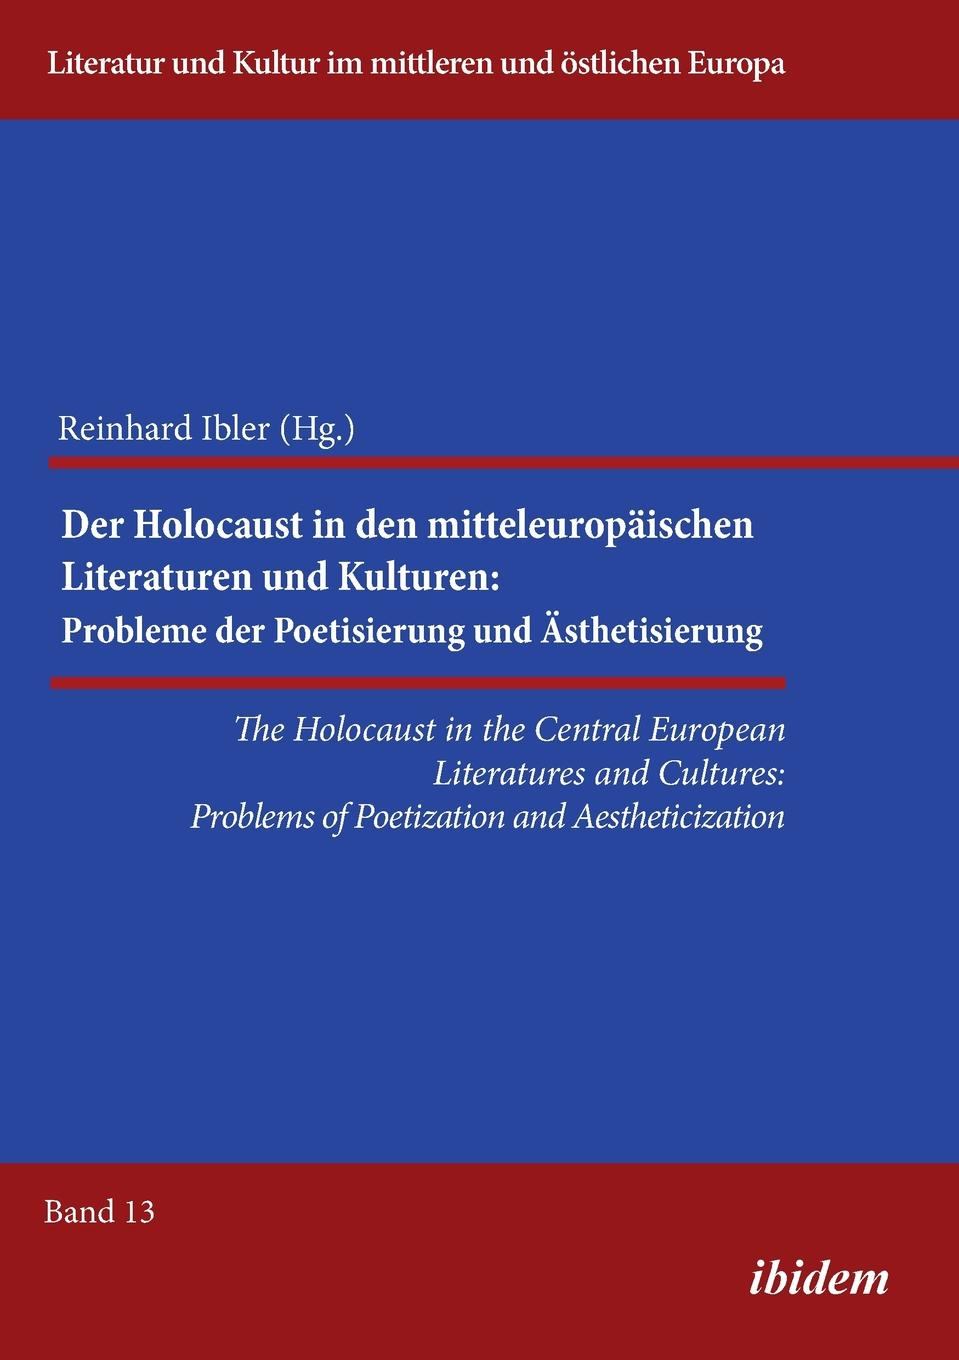 Katarzyna Adamaczak The Holocaust in the Central European Literatures and Cultures. Problems of Poetization and Aestheticization lipstadt d denial holocaust history on trial